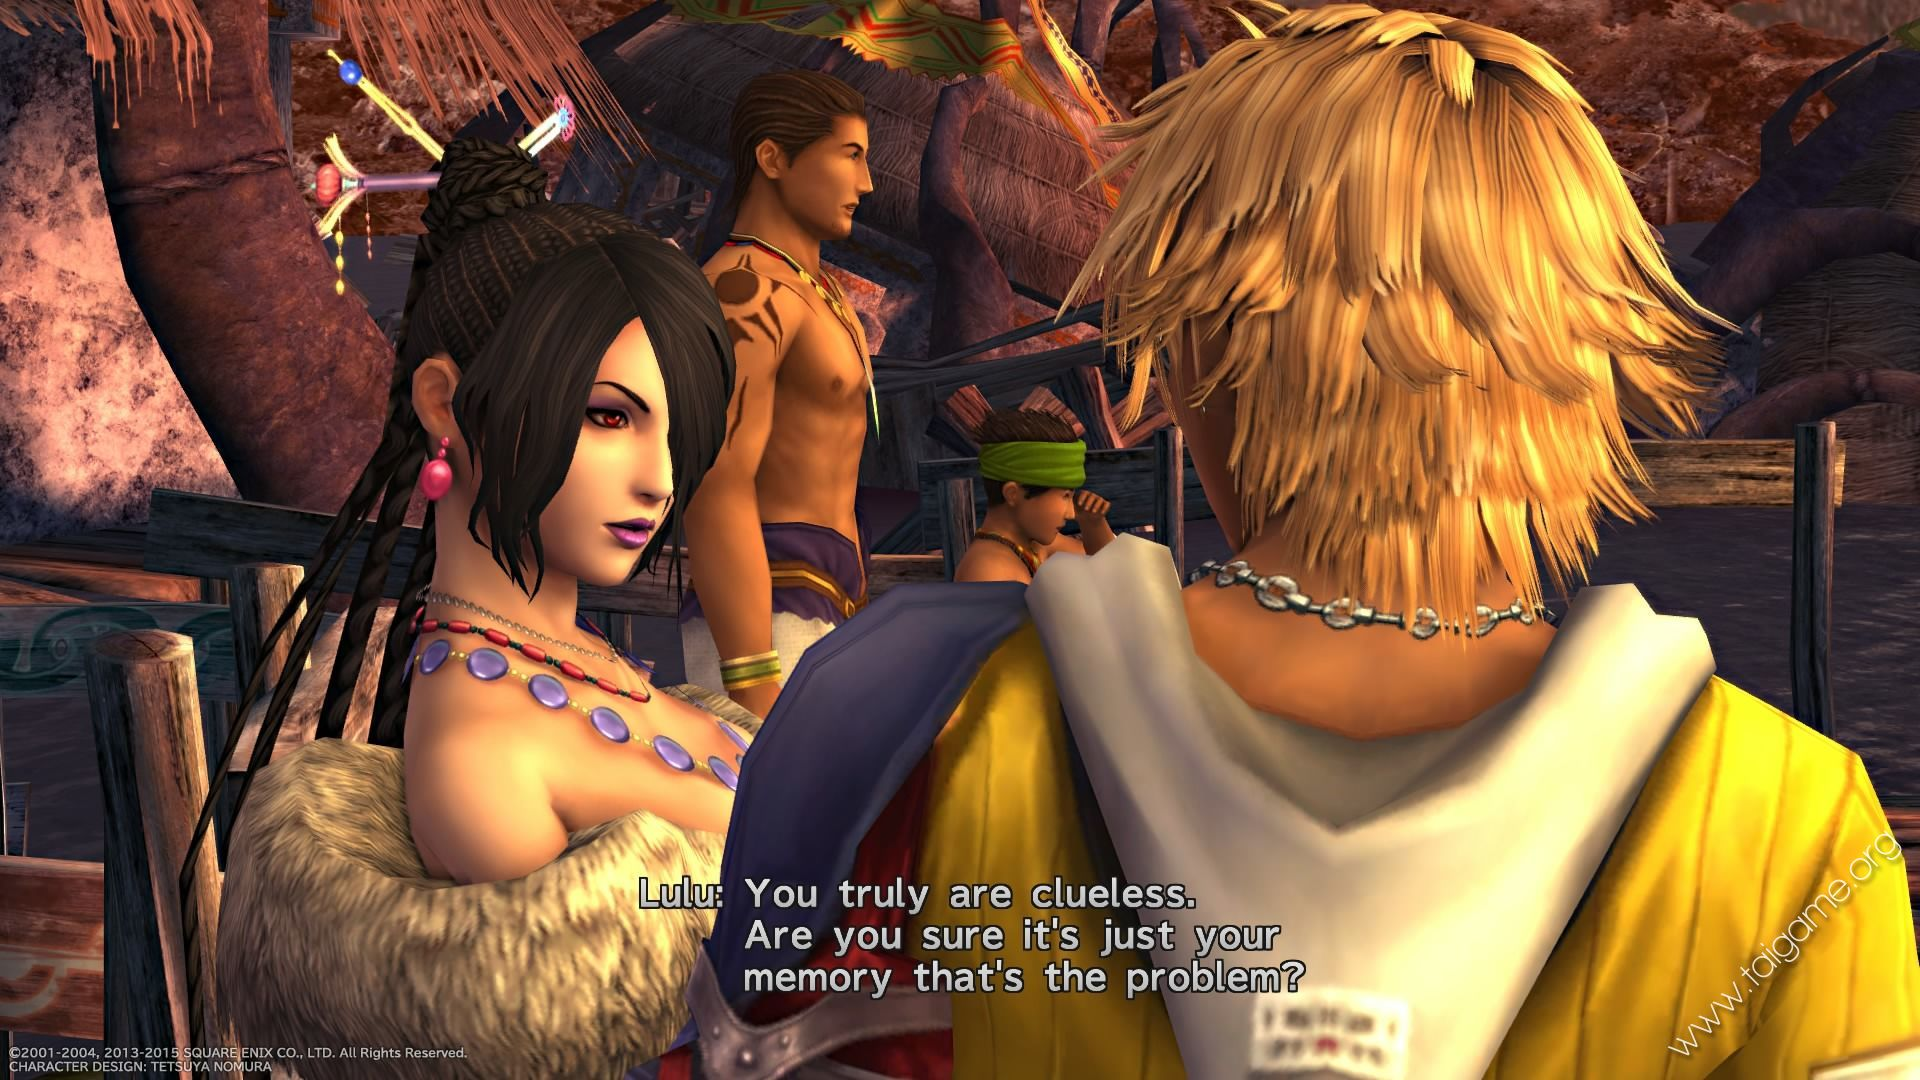 from Denver final fantasy x nude pics